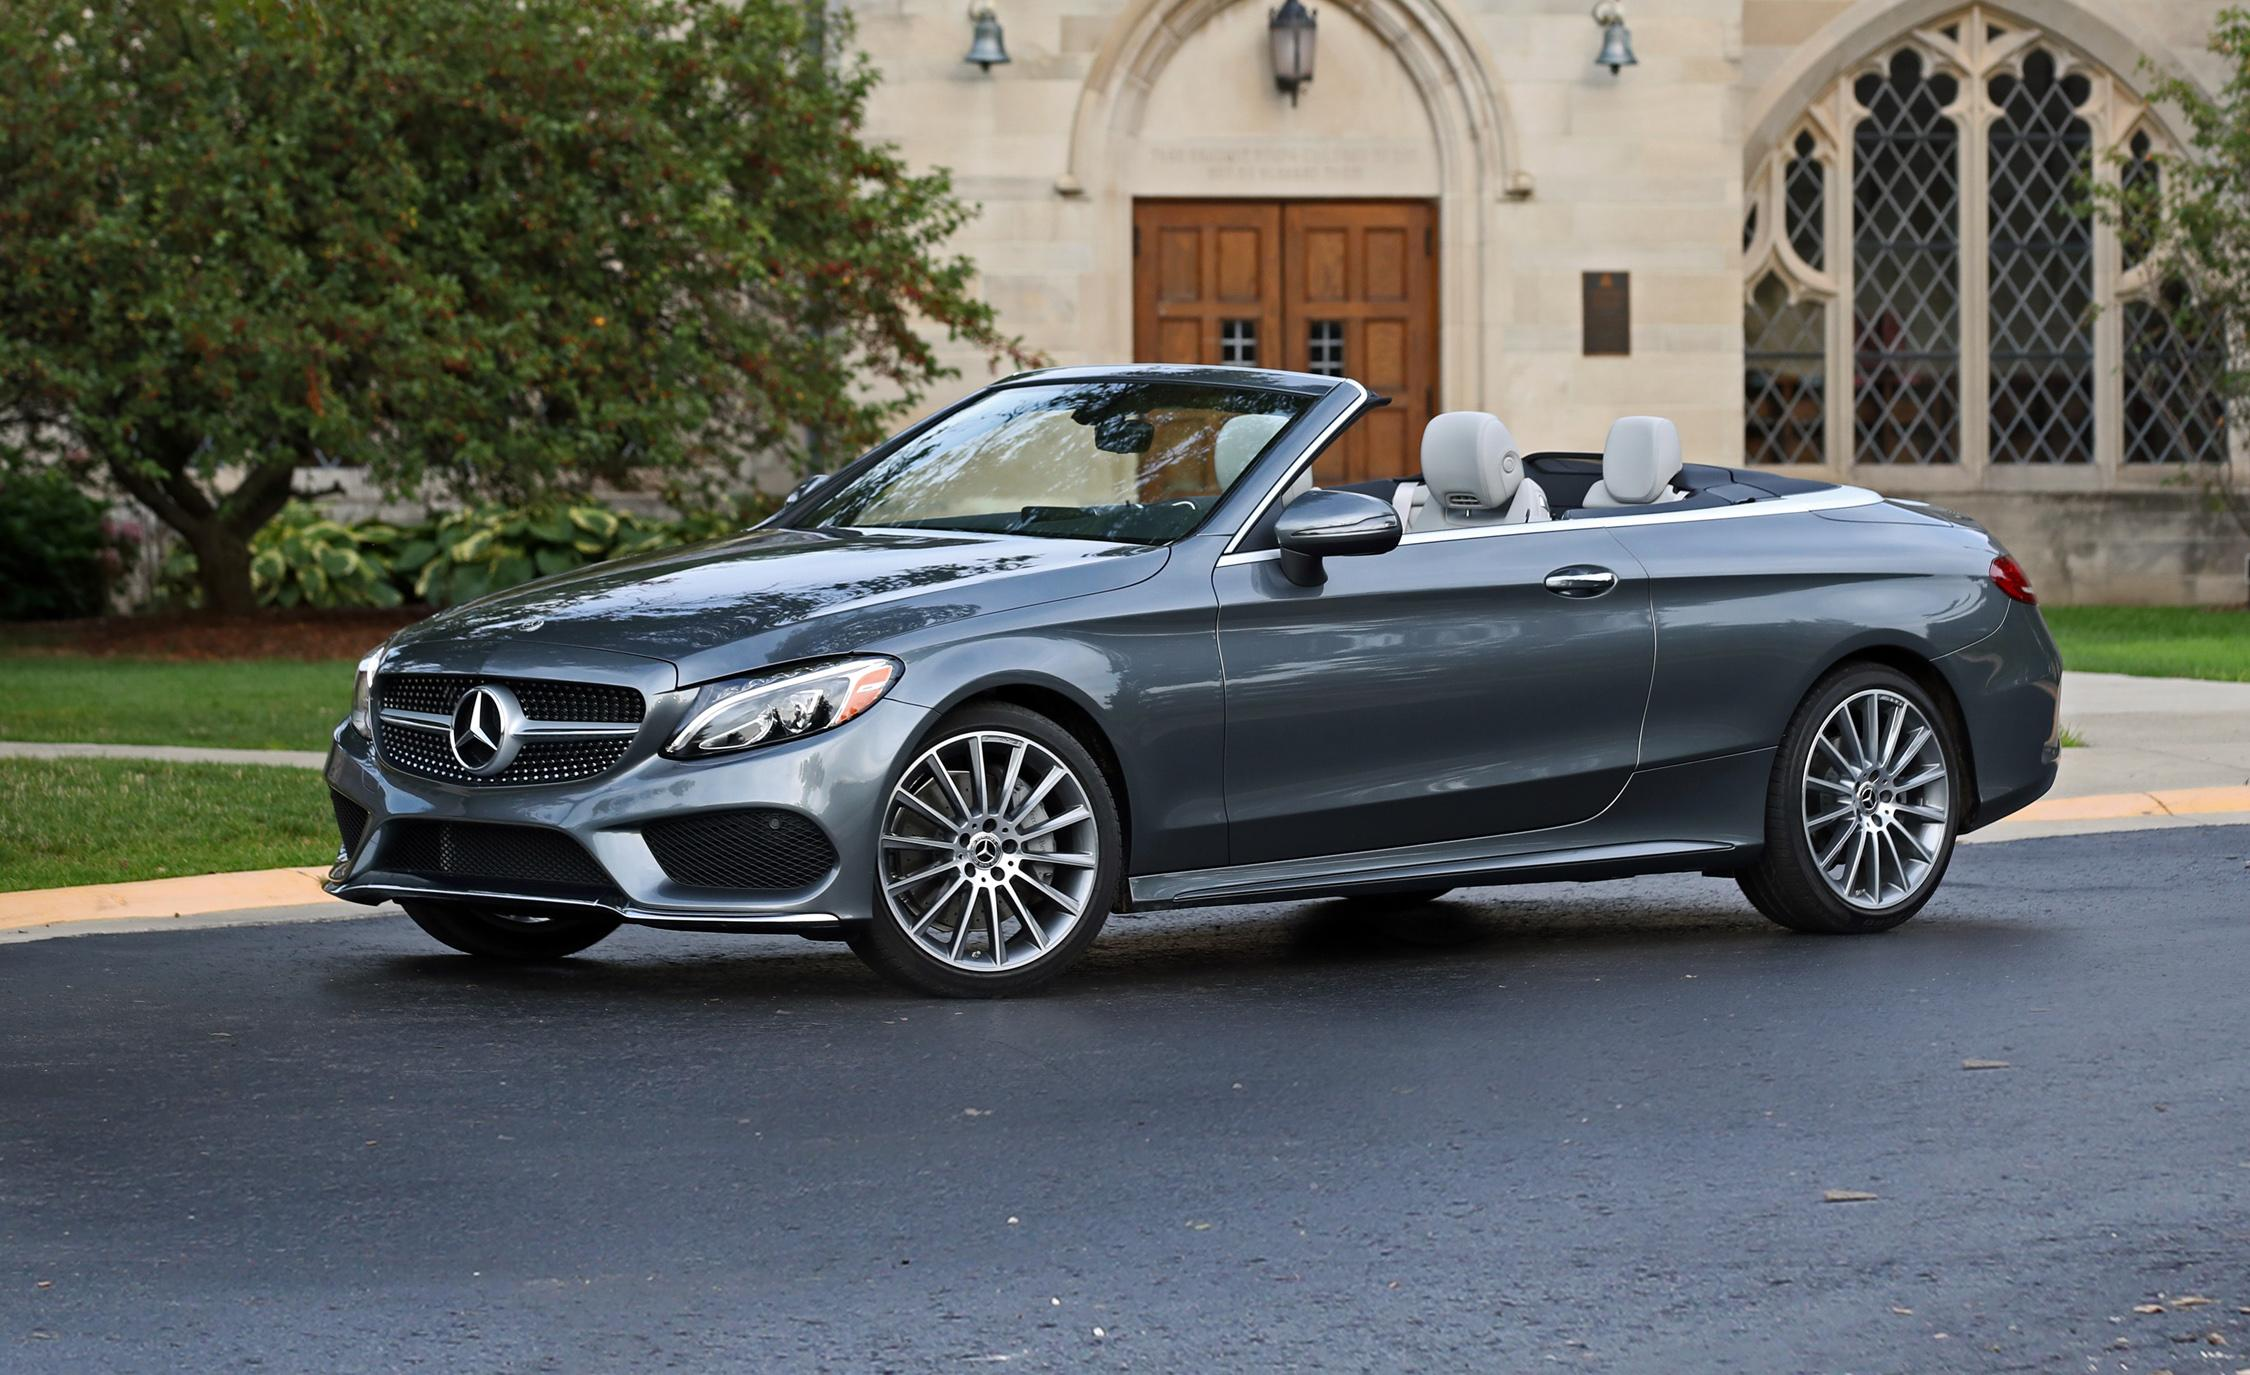 2018 mercedes benz c300 cabriolet. Black Bedroom Furniture Sets. Home Design Ideas